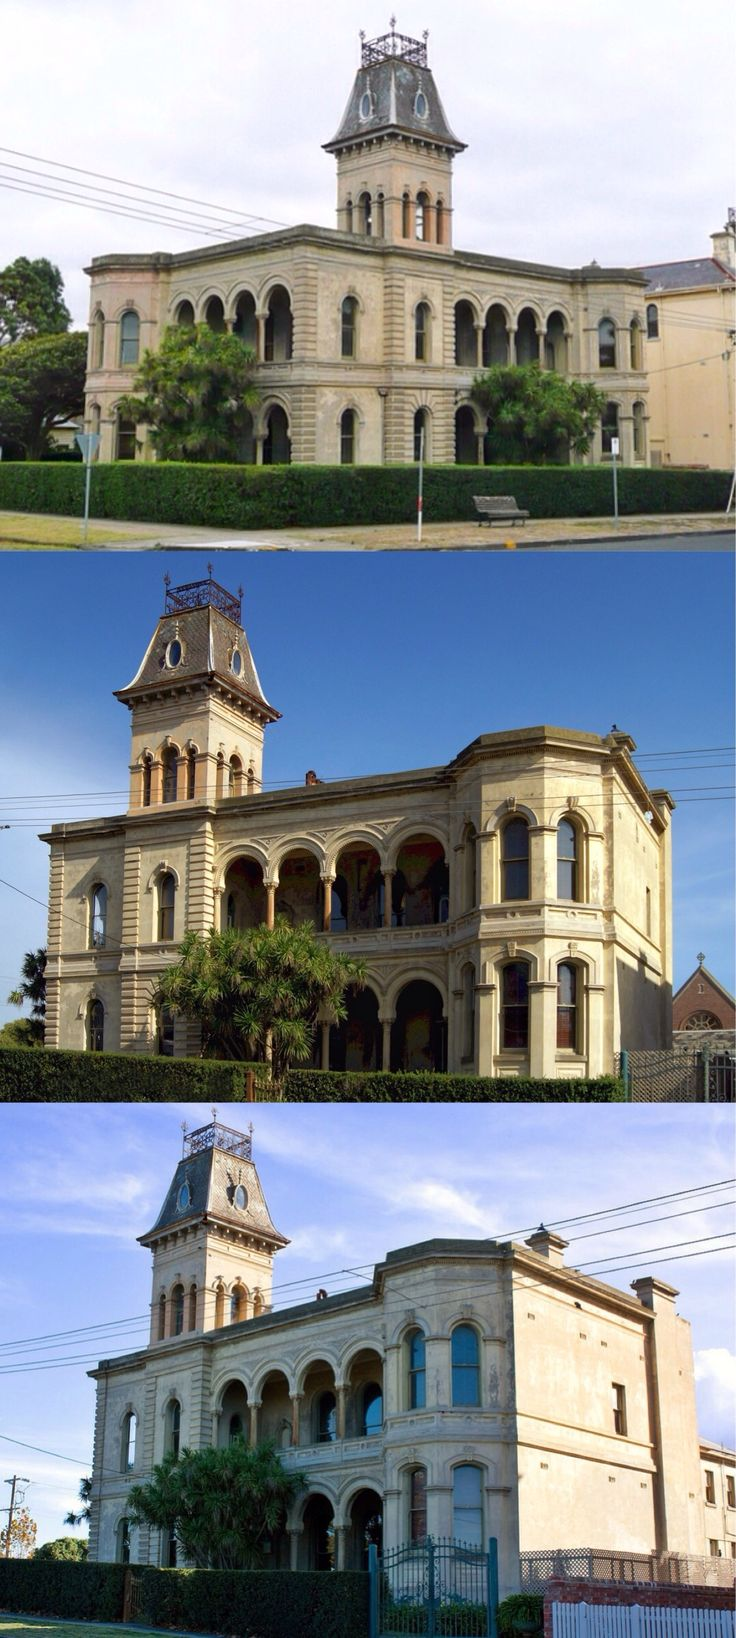 Lathamstowe, Queenscliff (103km SW of Melbourne). Designed by William J. Ellis; built 1882-83 by Edward Latham, brewer, specifically to enable Anglican clergy to holiday at this fashionable seaside resort. The palatial Italianate building is actually a pair of residences linked by a tower. Its flat lead roof (weighing 20tons) is accessed by an iron staircase. Used as a hotel, now a private residence. Until recently, it was one of the most intact buildings, externally and internally, in…